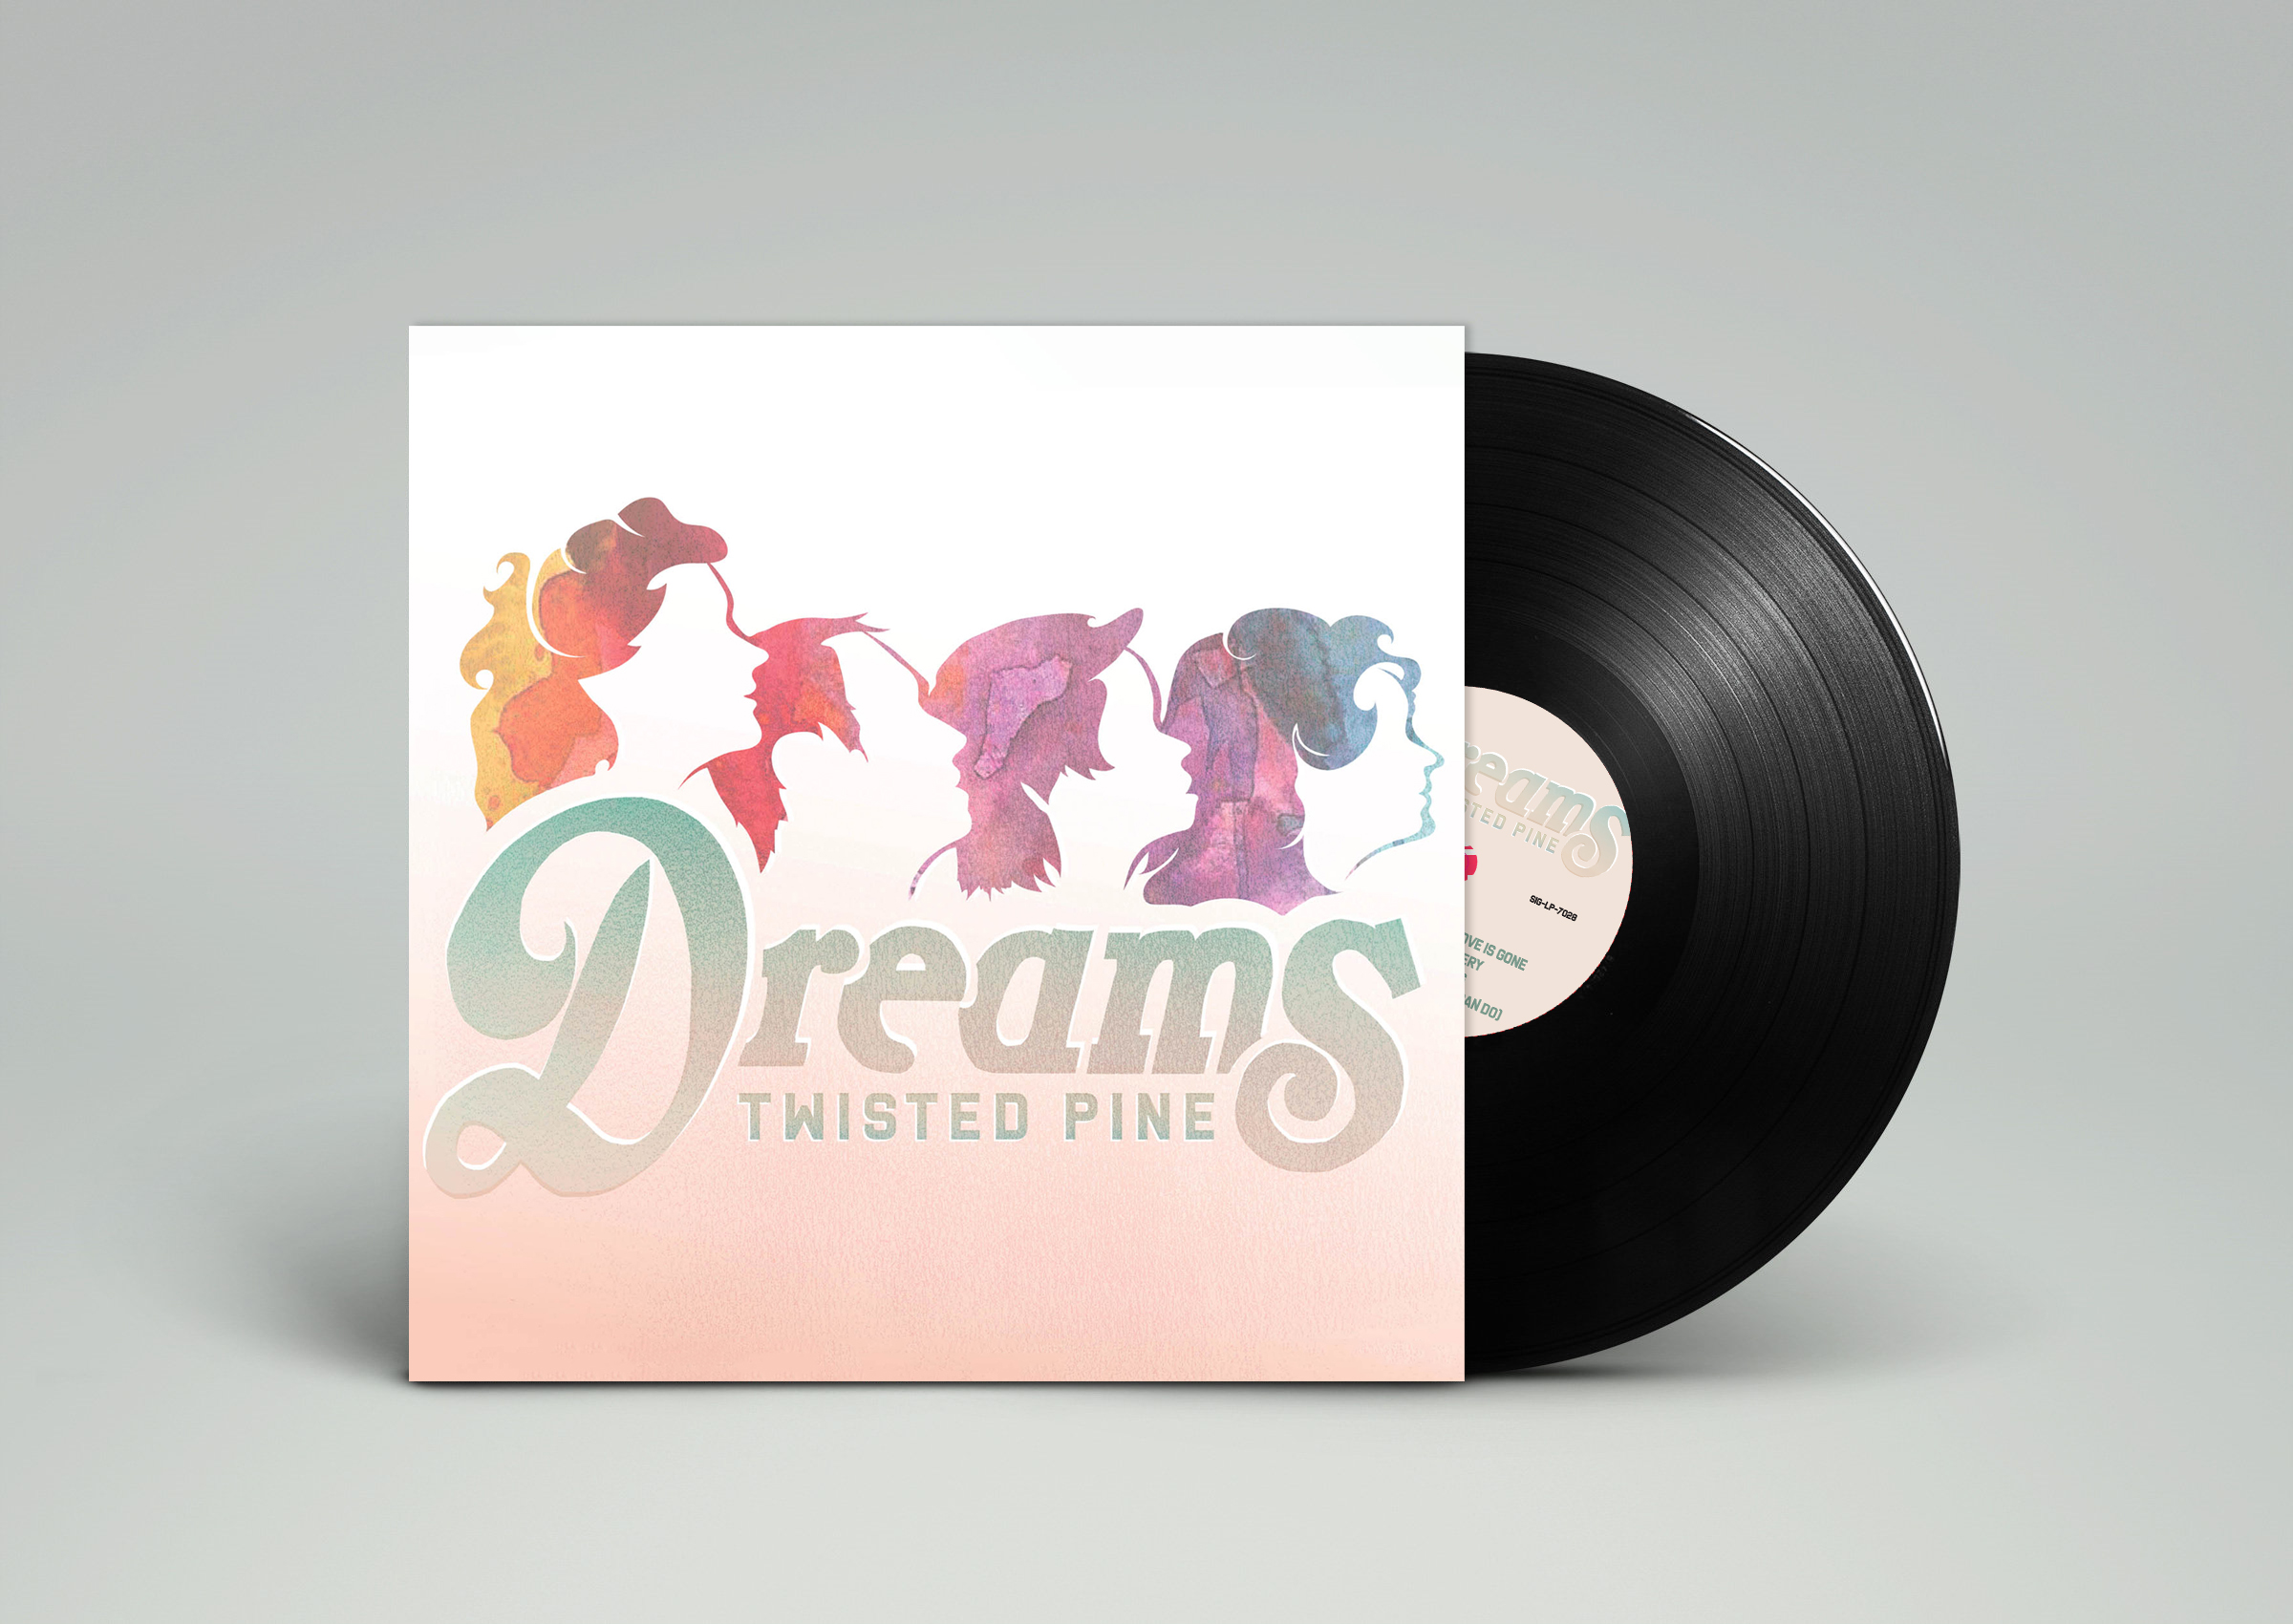 DREAMS ON VINYL